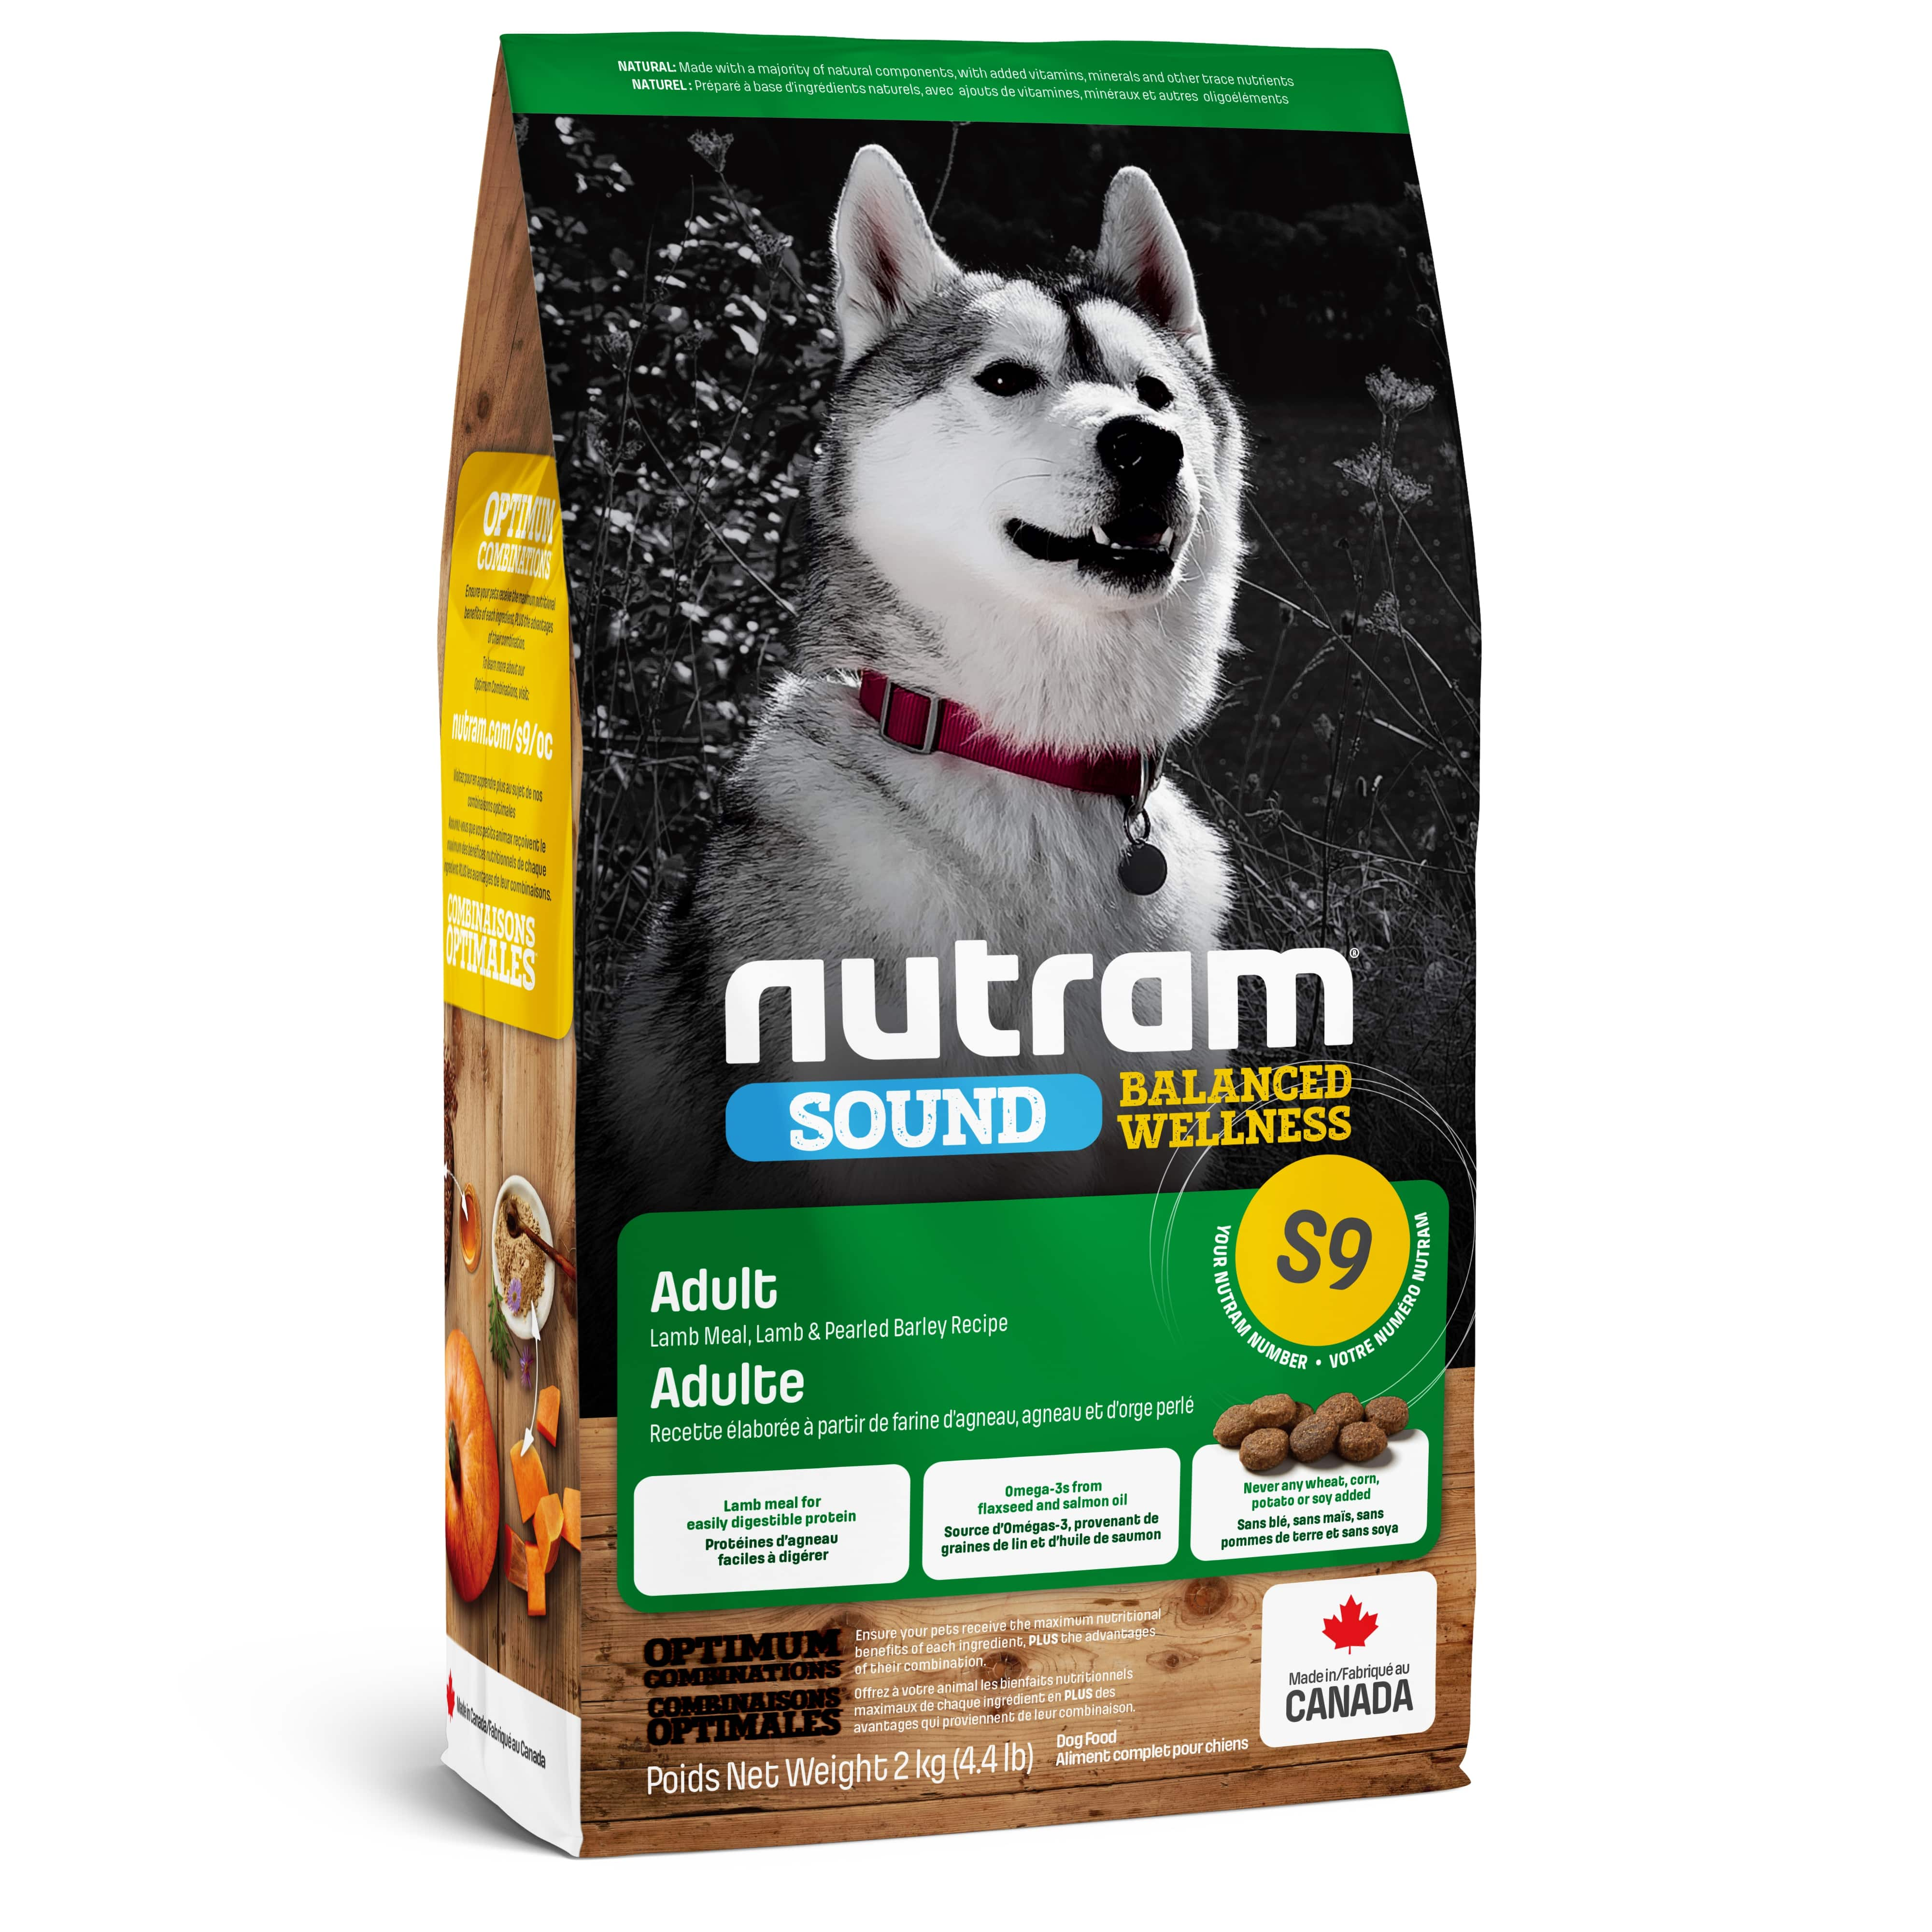 S9 Nutram Sound Balanced Wellness® Natural Lamb Adult Dog